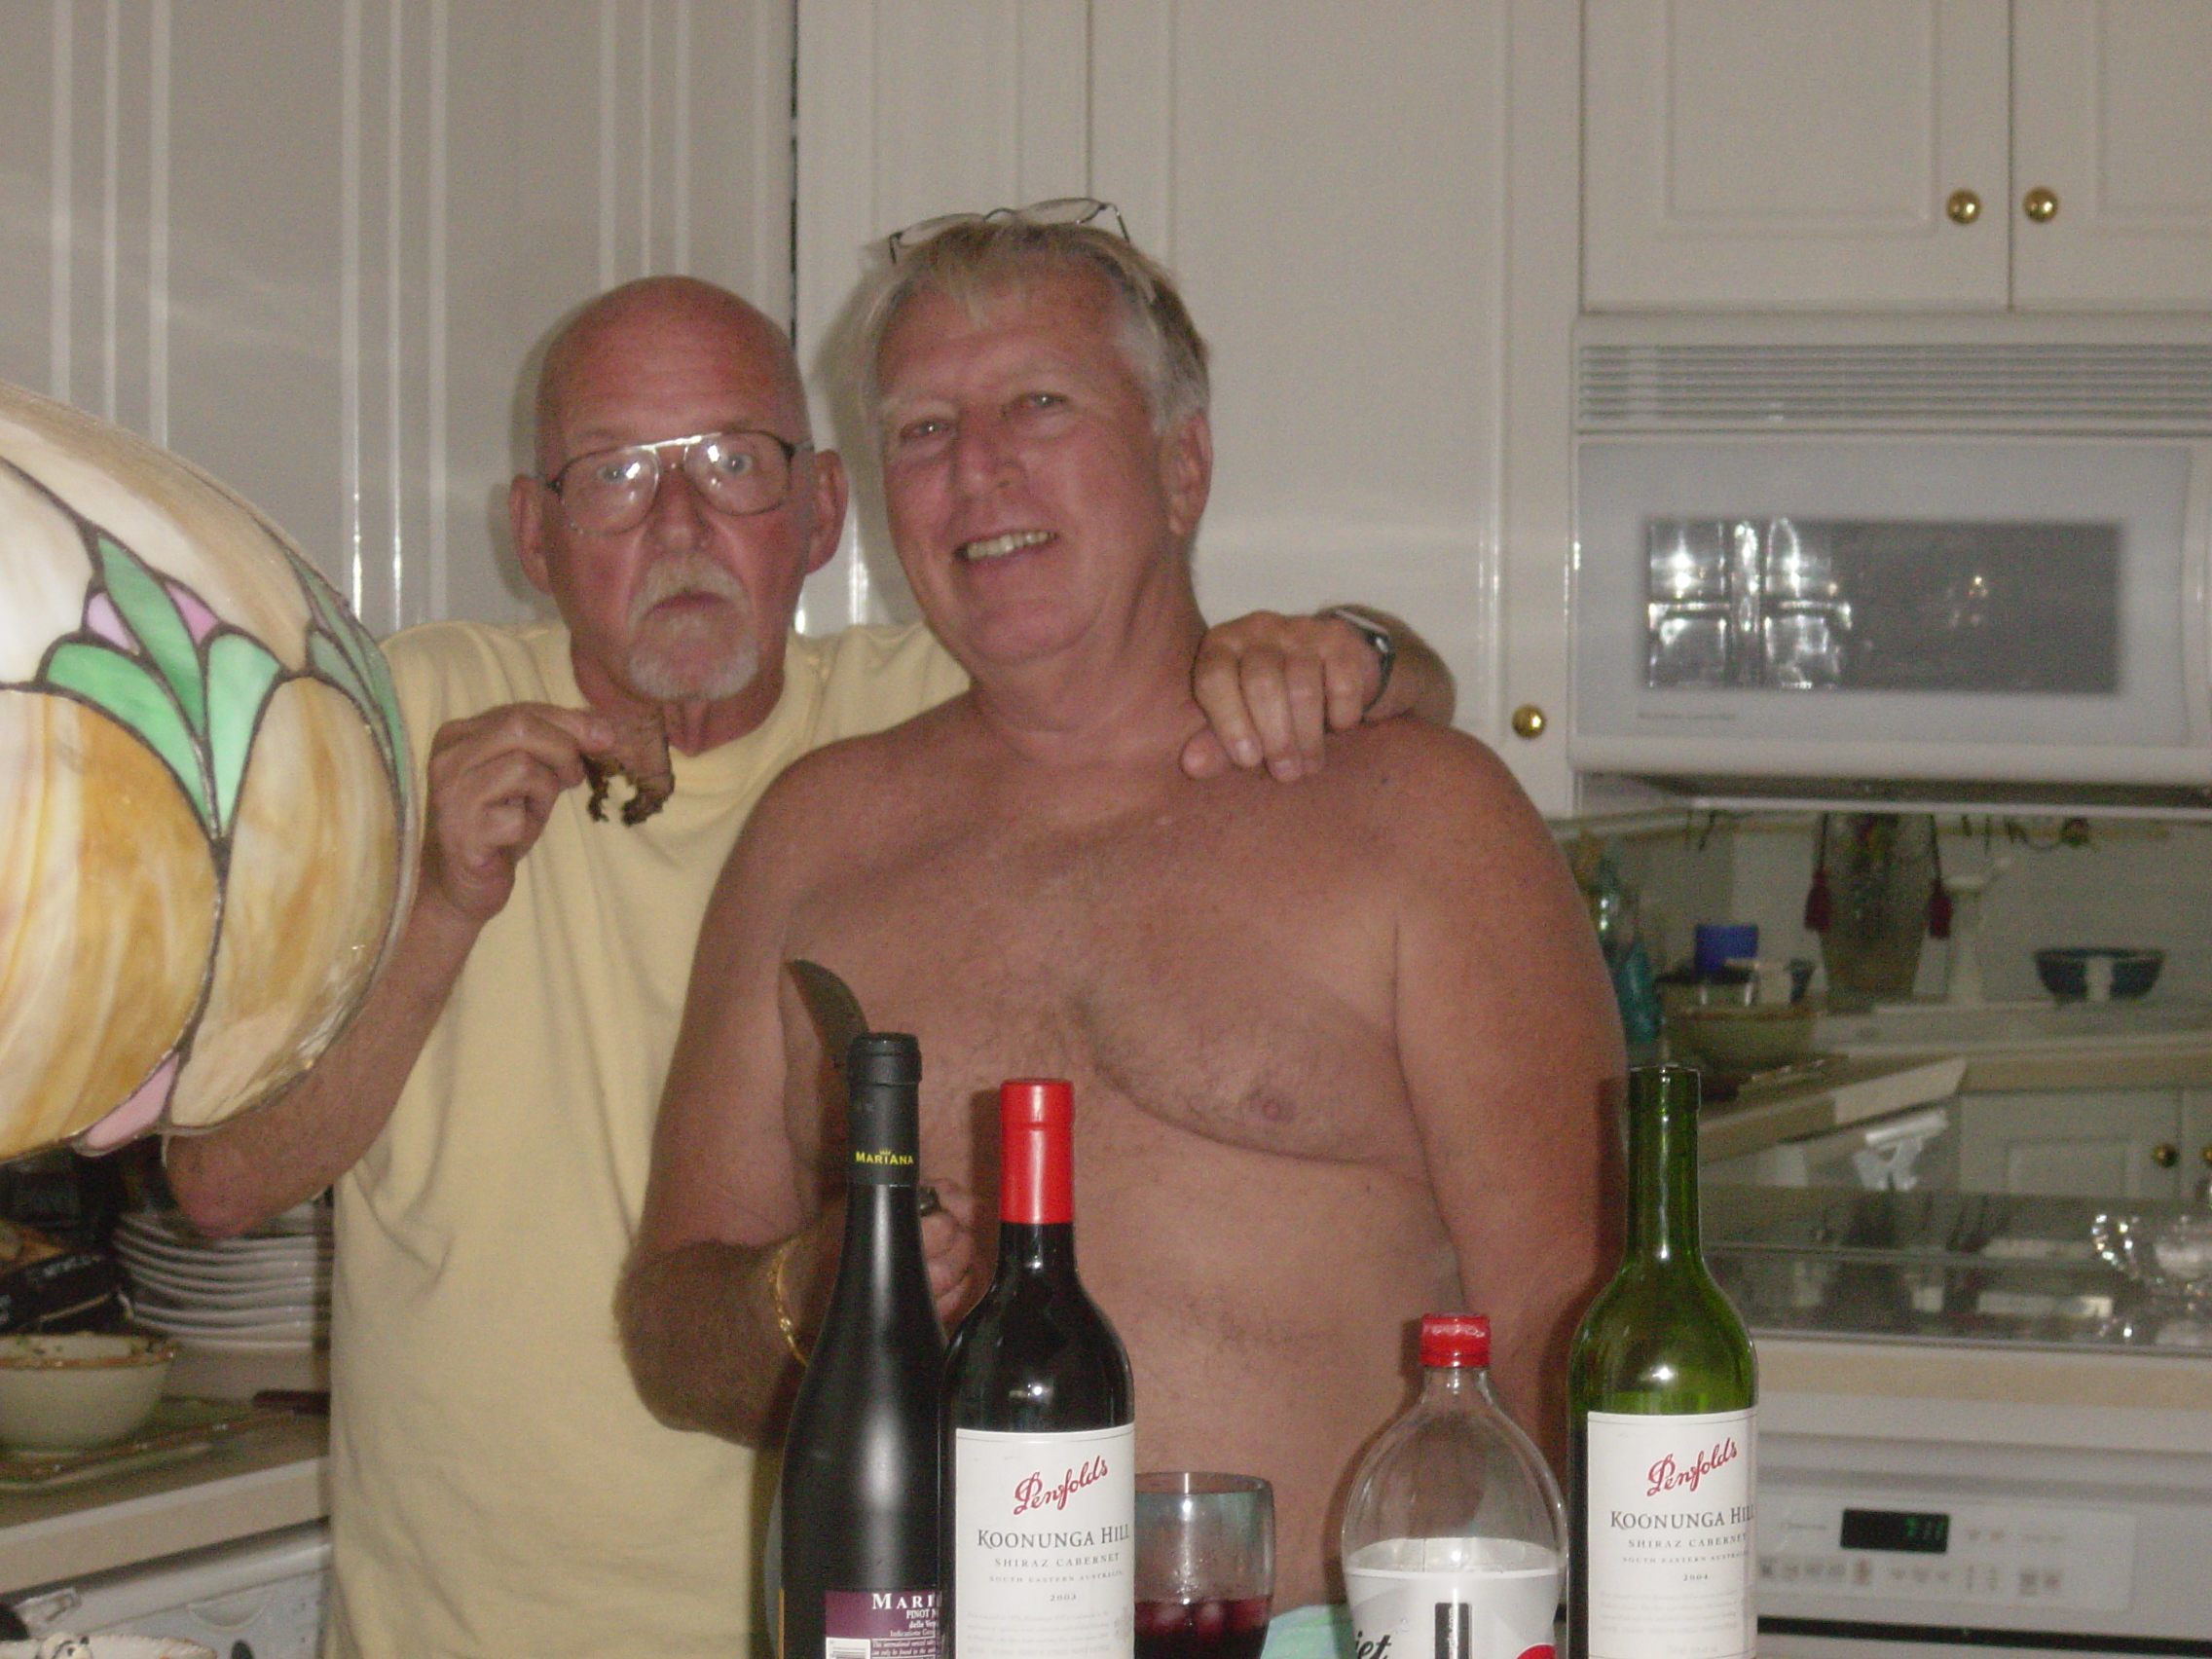 RIP dick, remembering this at christmas 2007 with bill. You were a dear friend to all. my heart and condolences goes out to you chuck. Loss is never easy, you are in my thoughts. I am one of the privilaged to have known Dick and enjoy his company. respectfully Pery-Nicholas